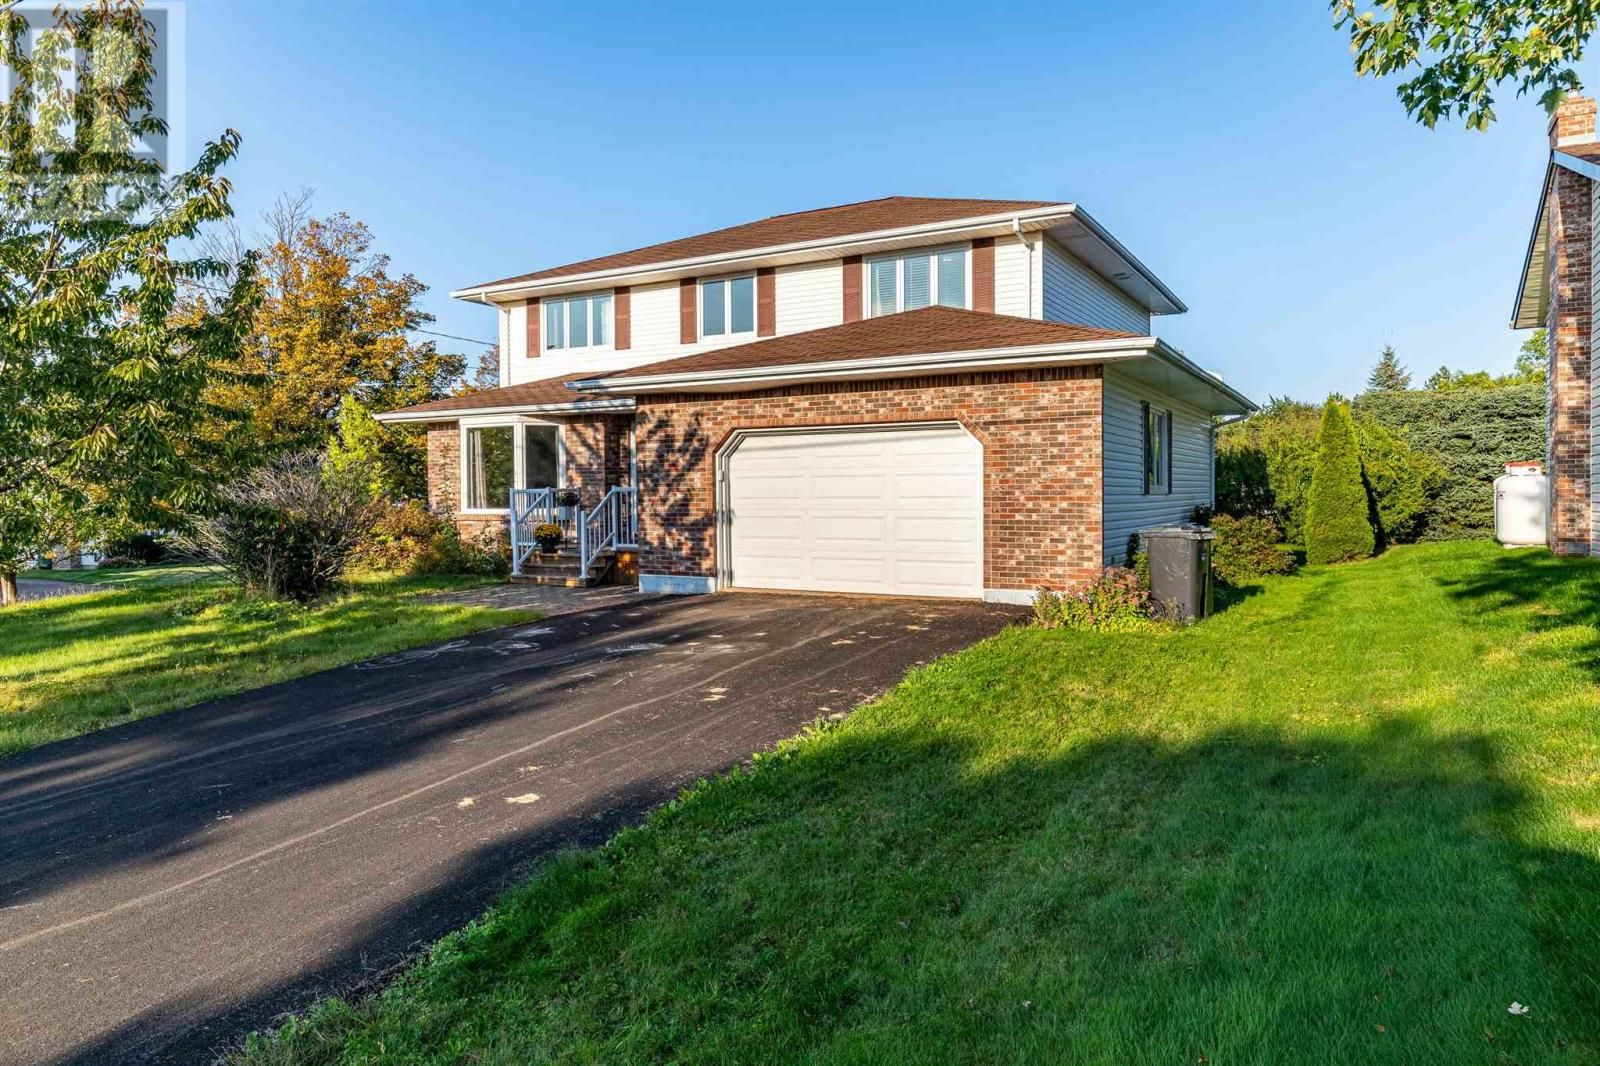 Main Photo: 30 Beer Street in Charlottetown: House for sale : MLS®# 202124833